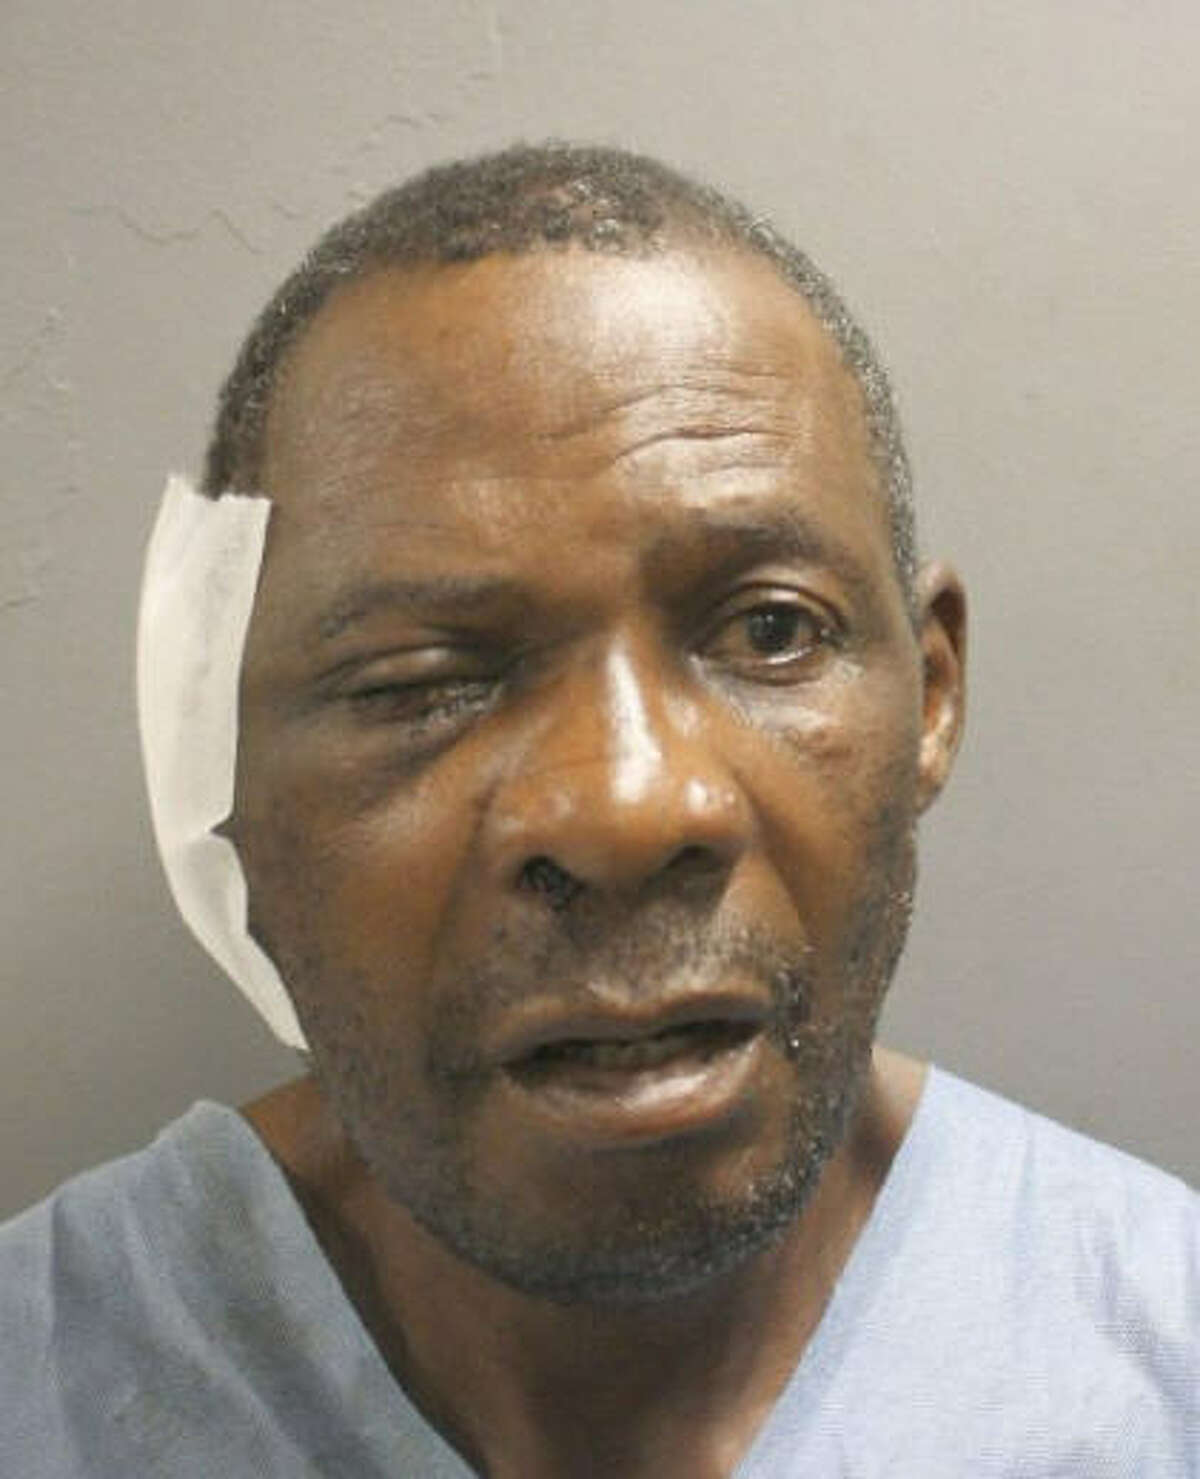 Jean Pierre Ndossoka, 61, is charged with two counts of capital murder in connection with the Aug. 4, 2018 double slaying of his two children at his Houston apartment.